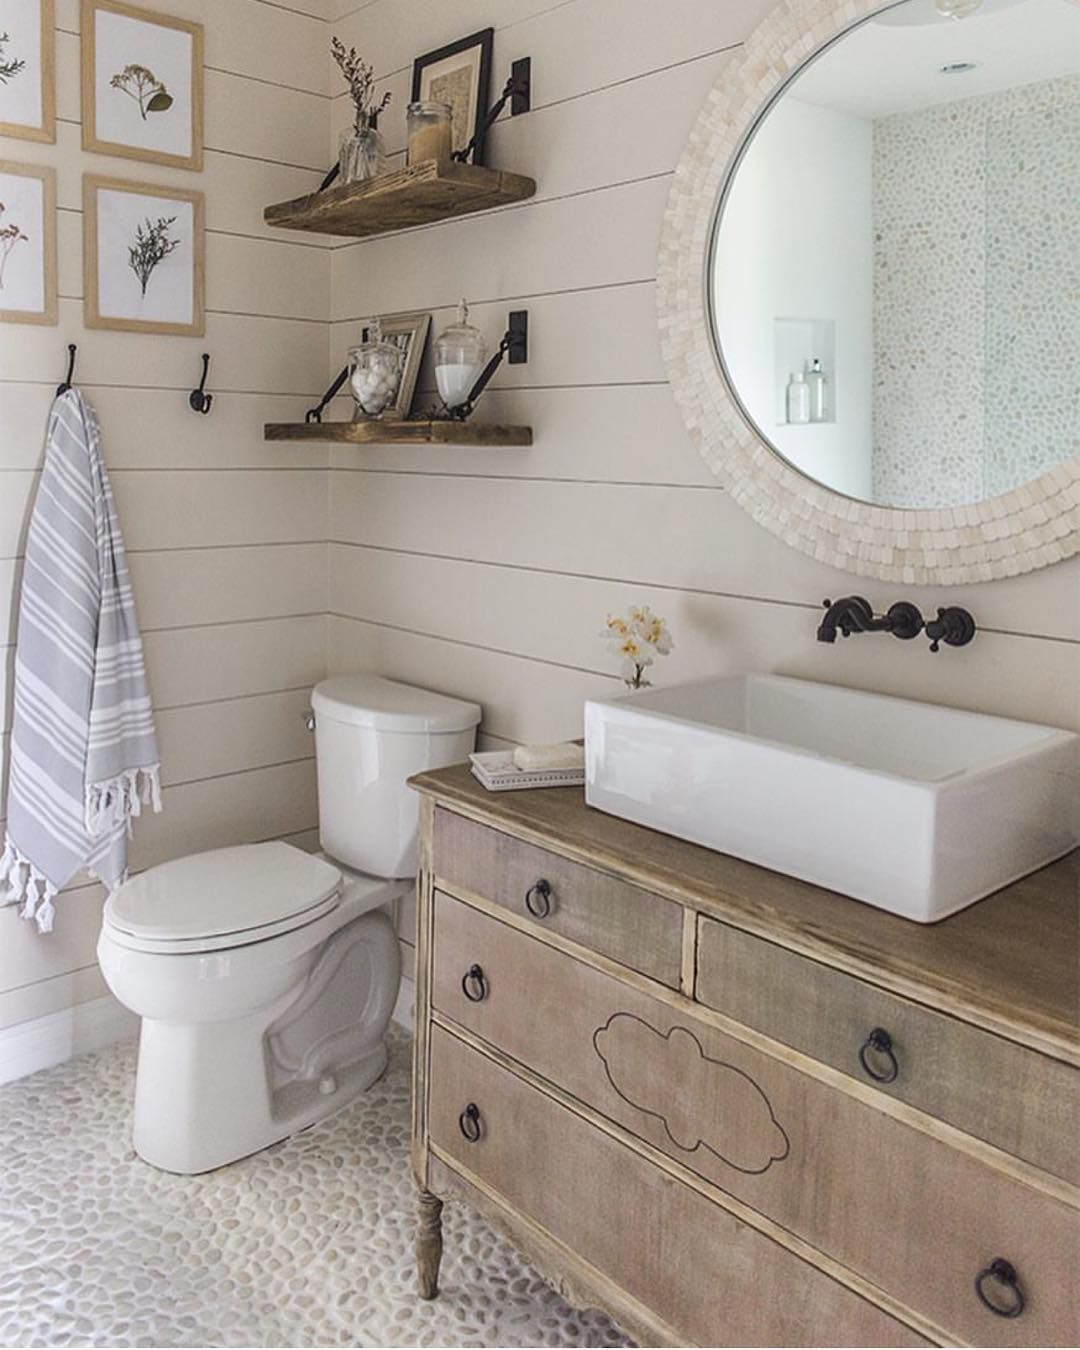 I've been loving shiplap walls in bathrooms for a while now. I didn